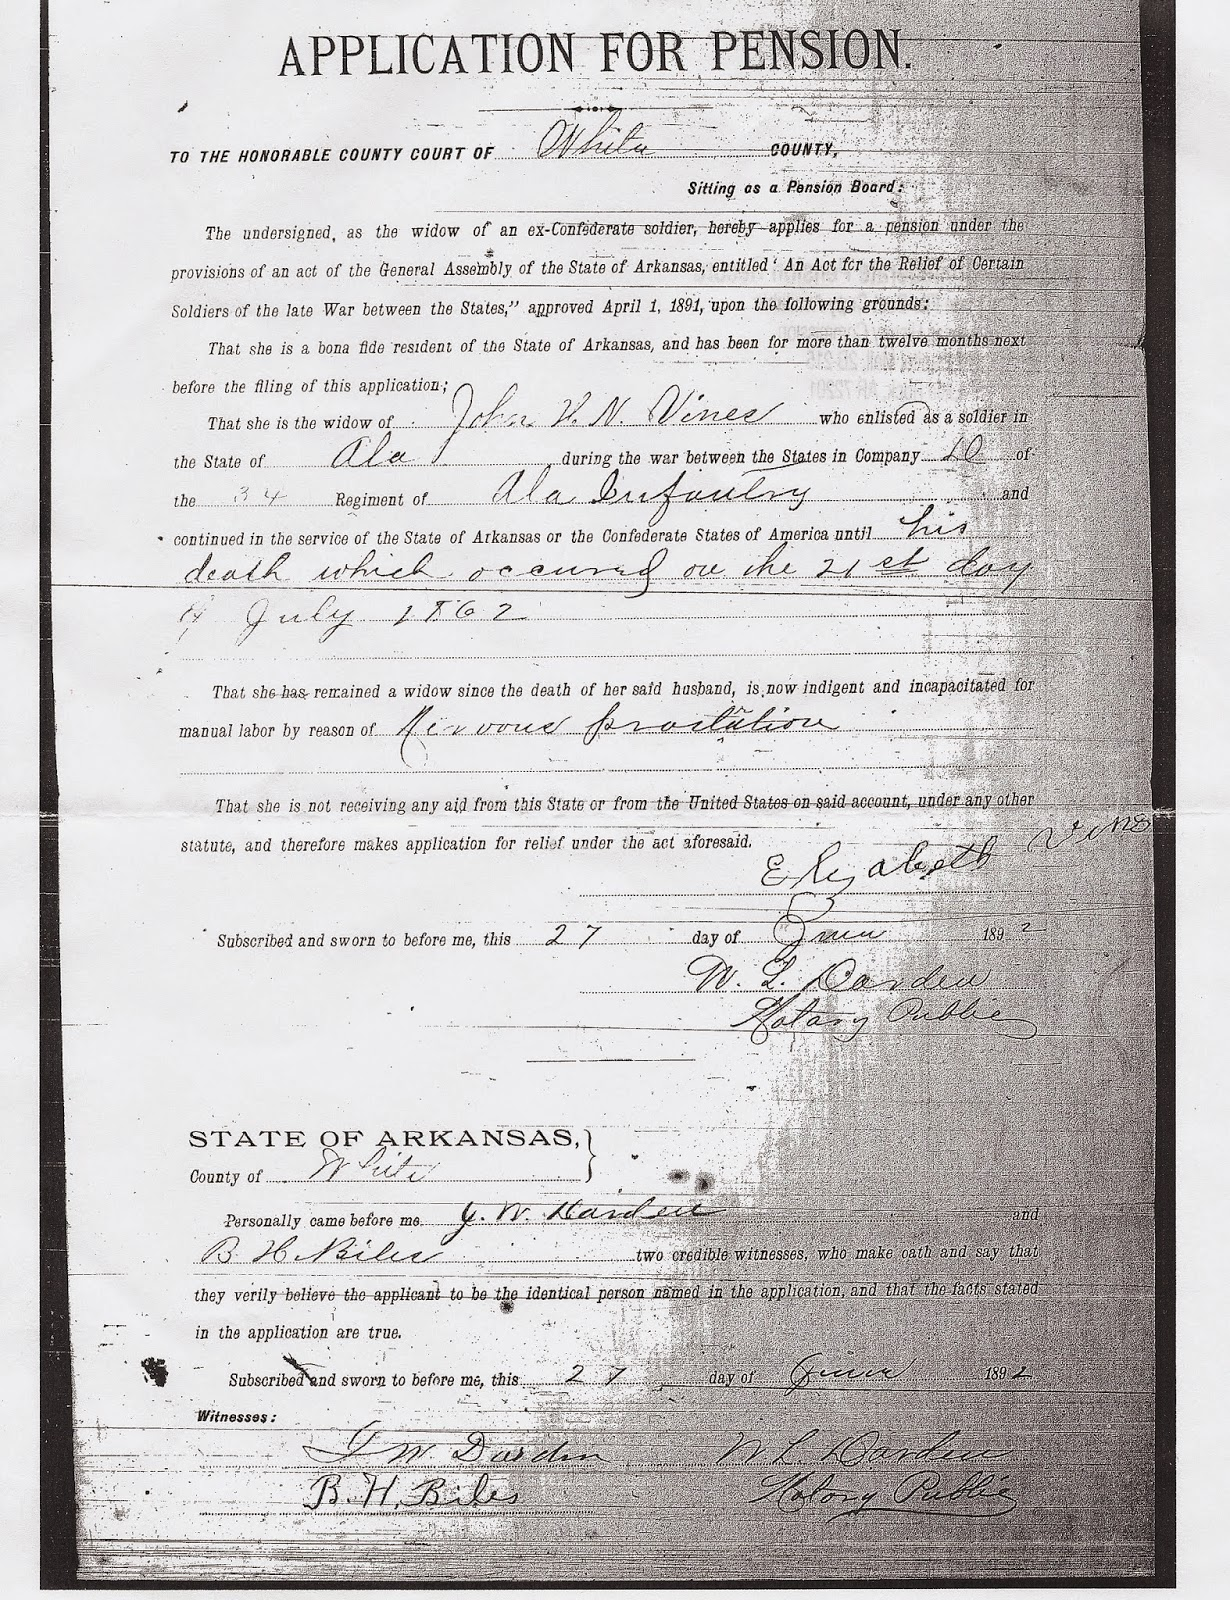 My ancestors leaves application for pension by elizabeth miles vines june 27 1892 ordered and received from arkansas confederate penion records arkansas history commission aiddatafo Choice Image